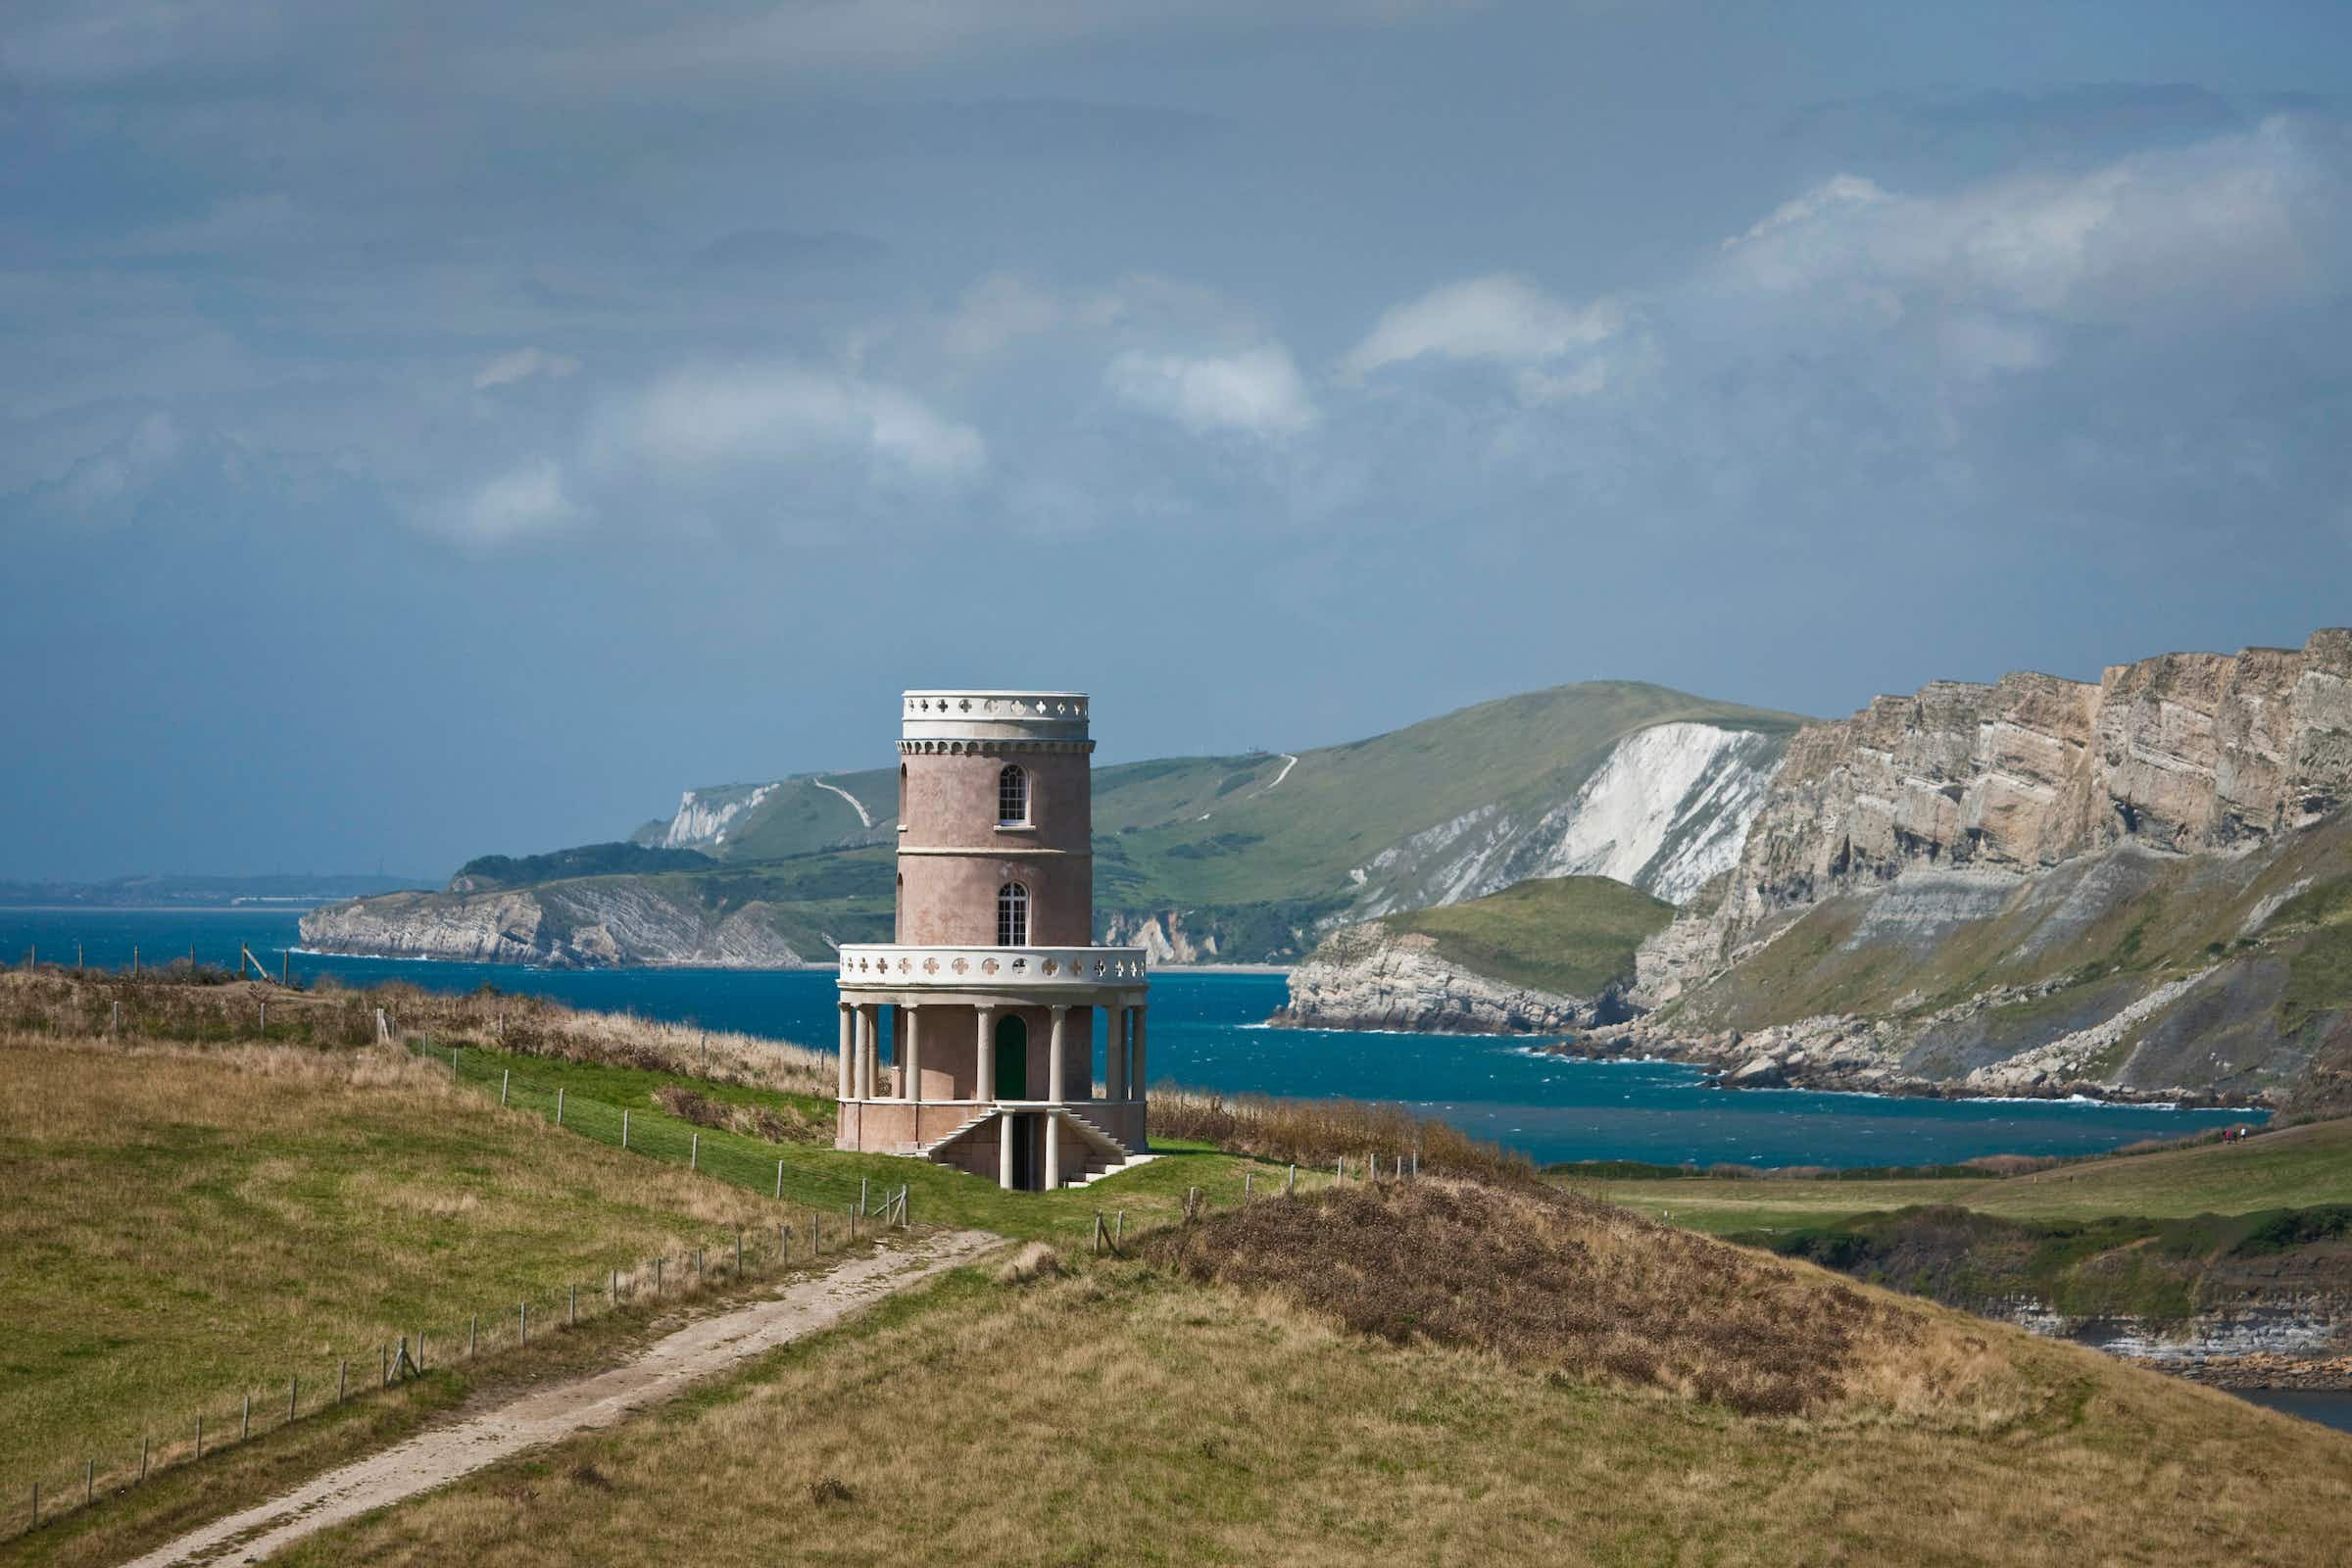 This tower is the UK's most popular heritage holiday rental